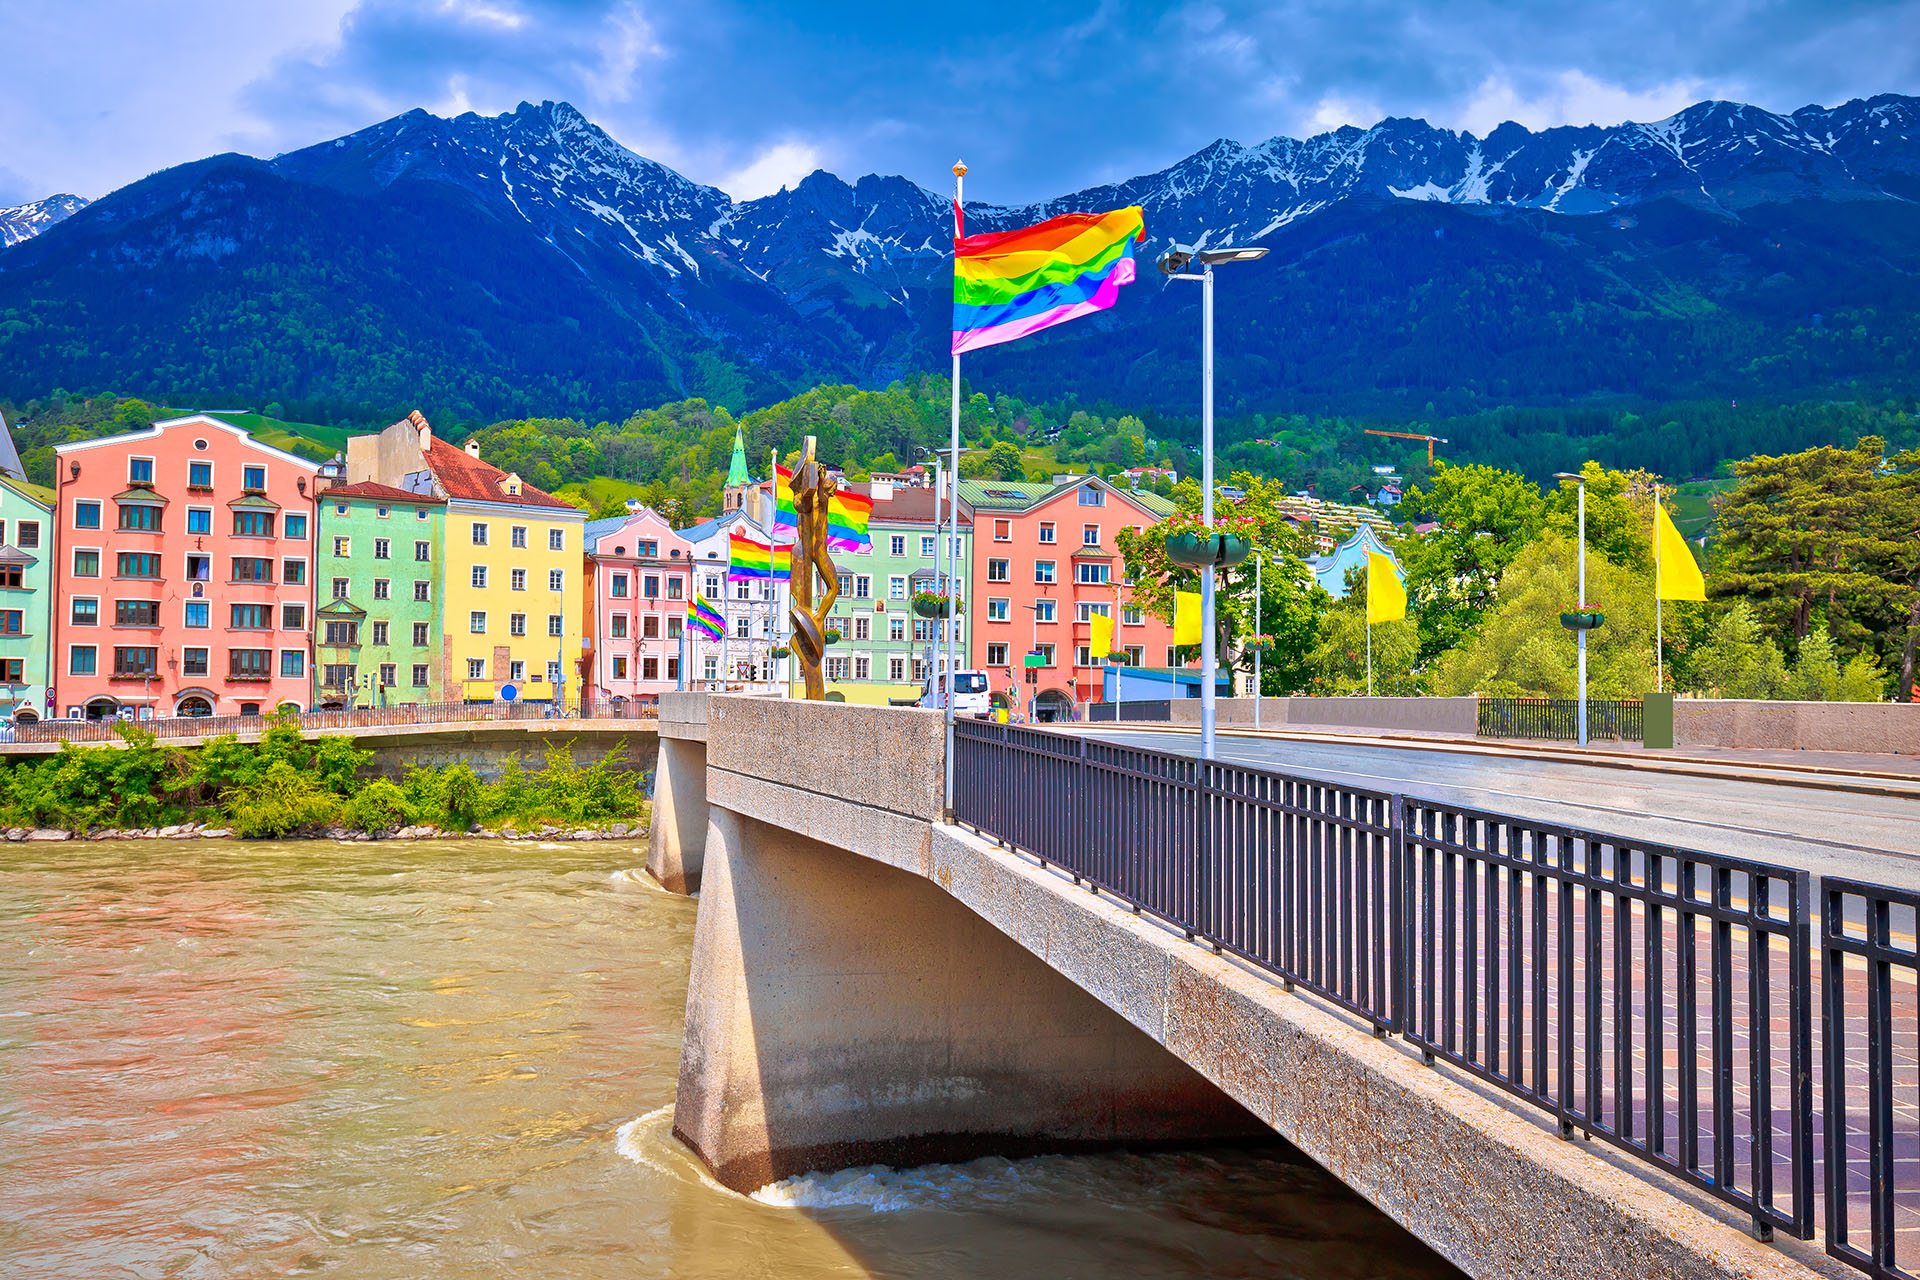 Destination gay d'Innsbruck